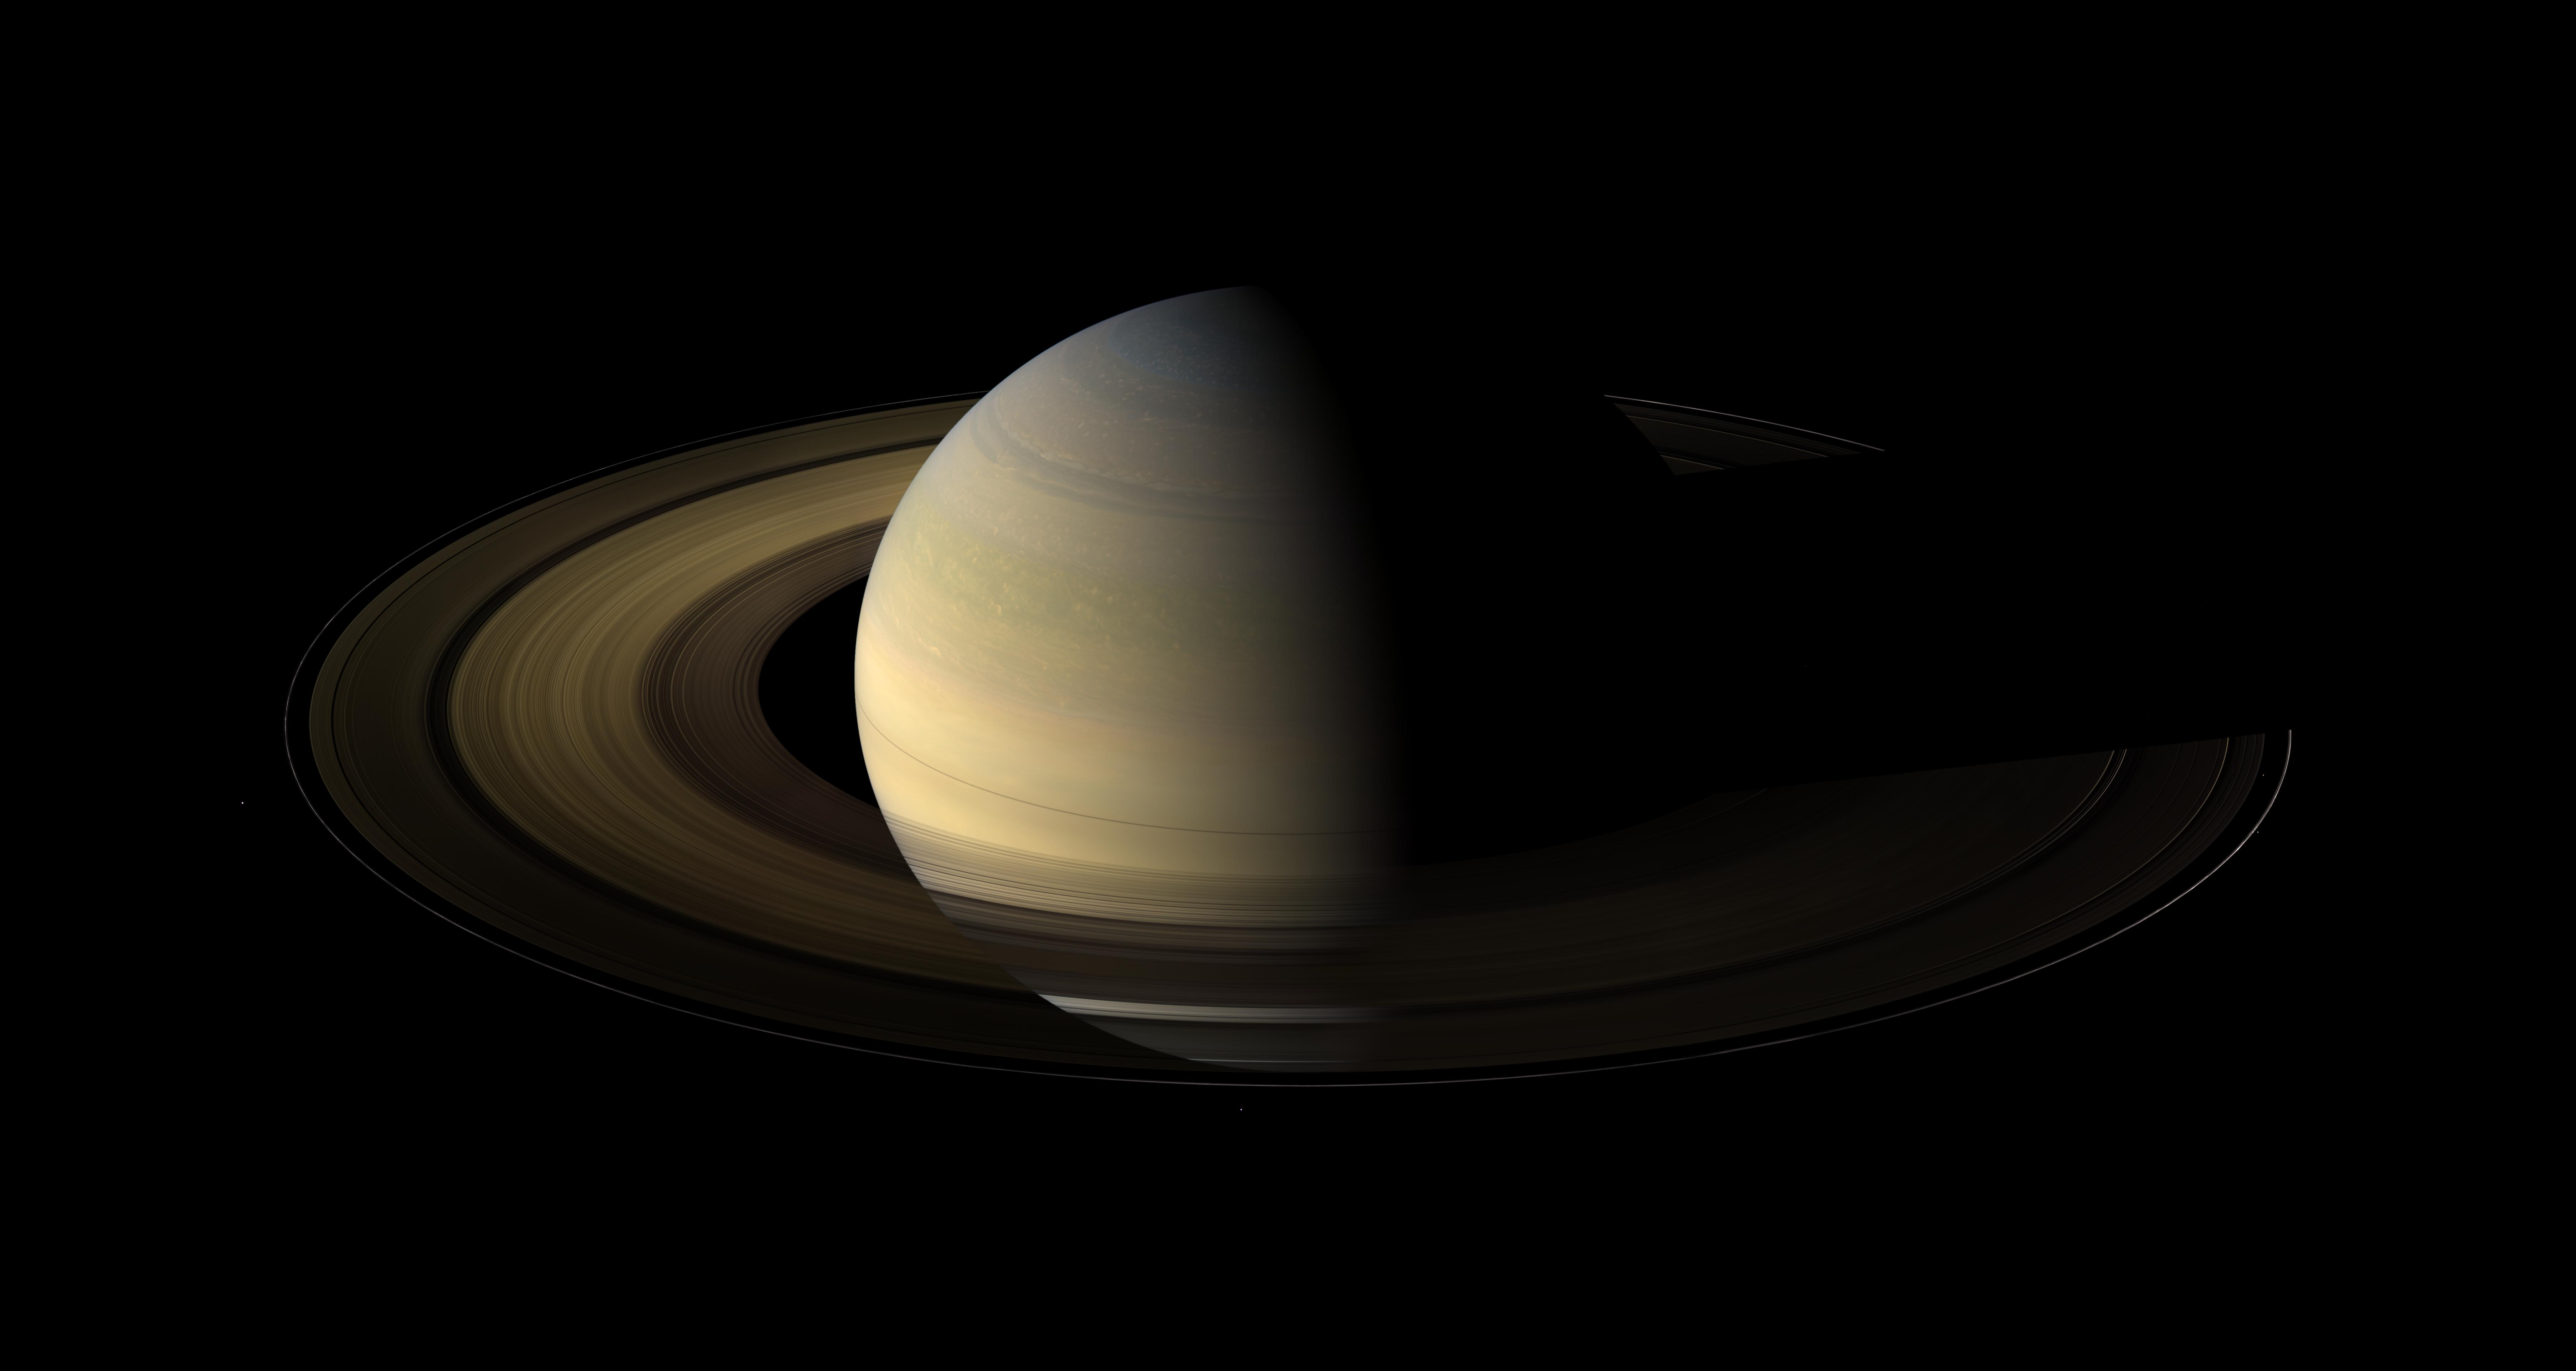 Saturn's equinox captured in a mosaic of light and dark,